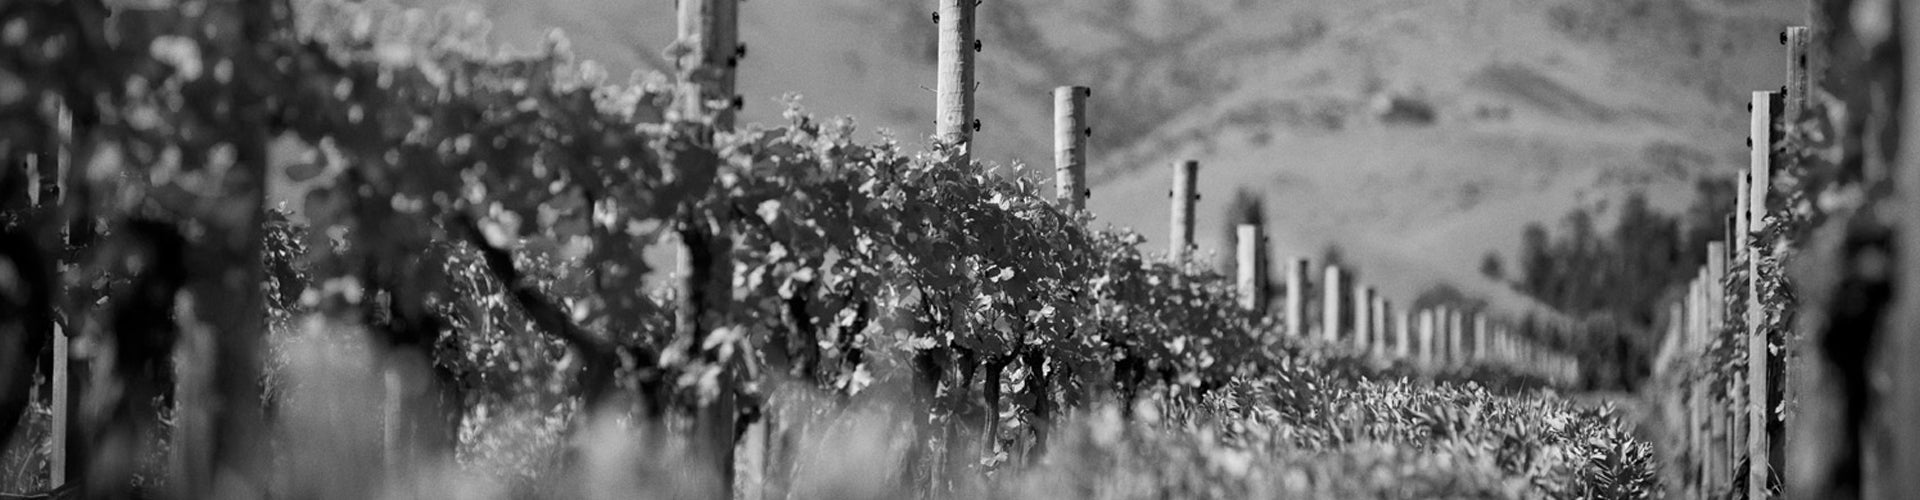 Mahi vineyard in Marlborough